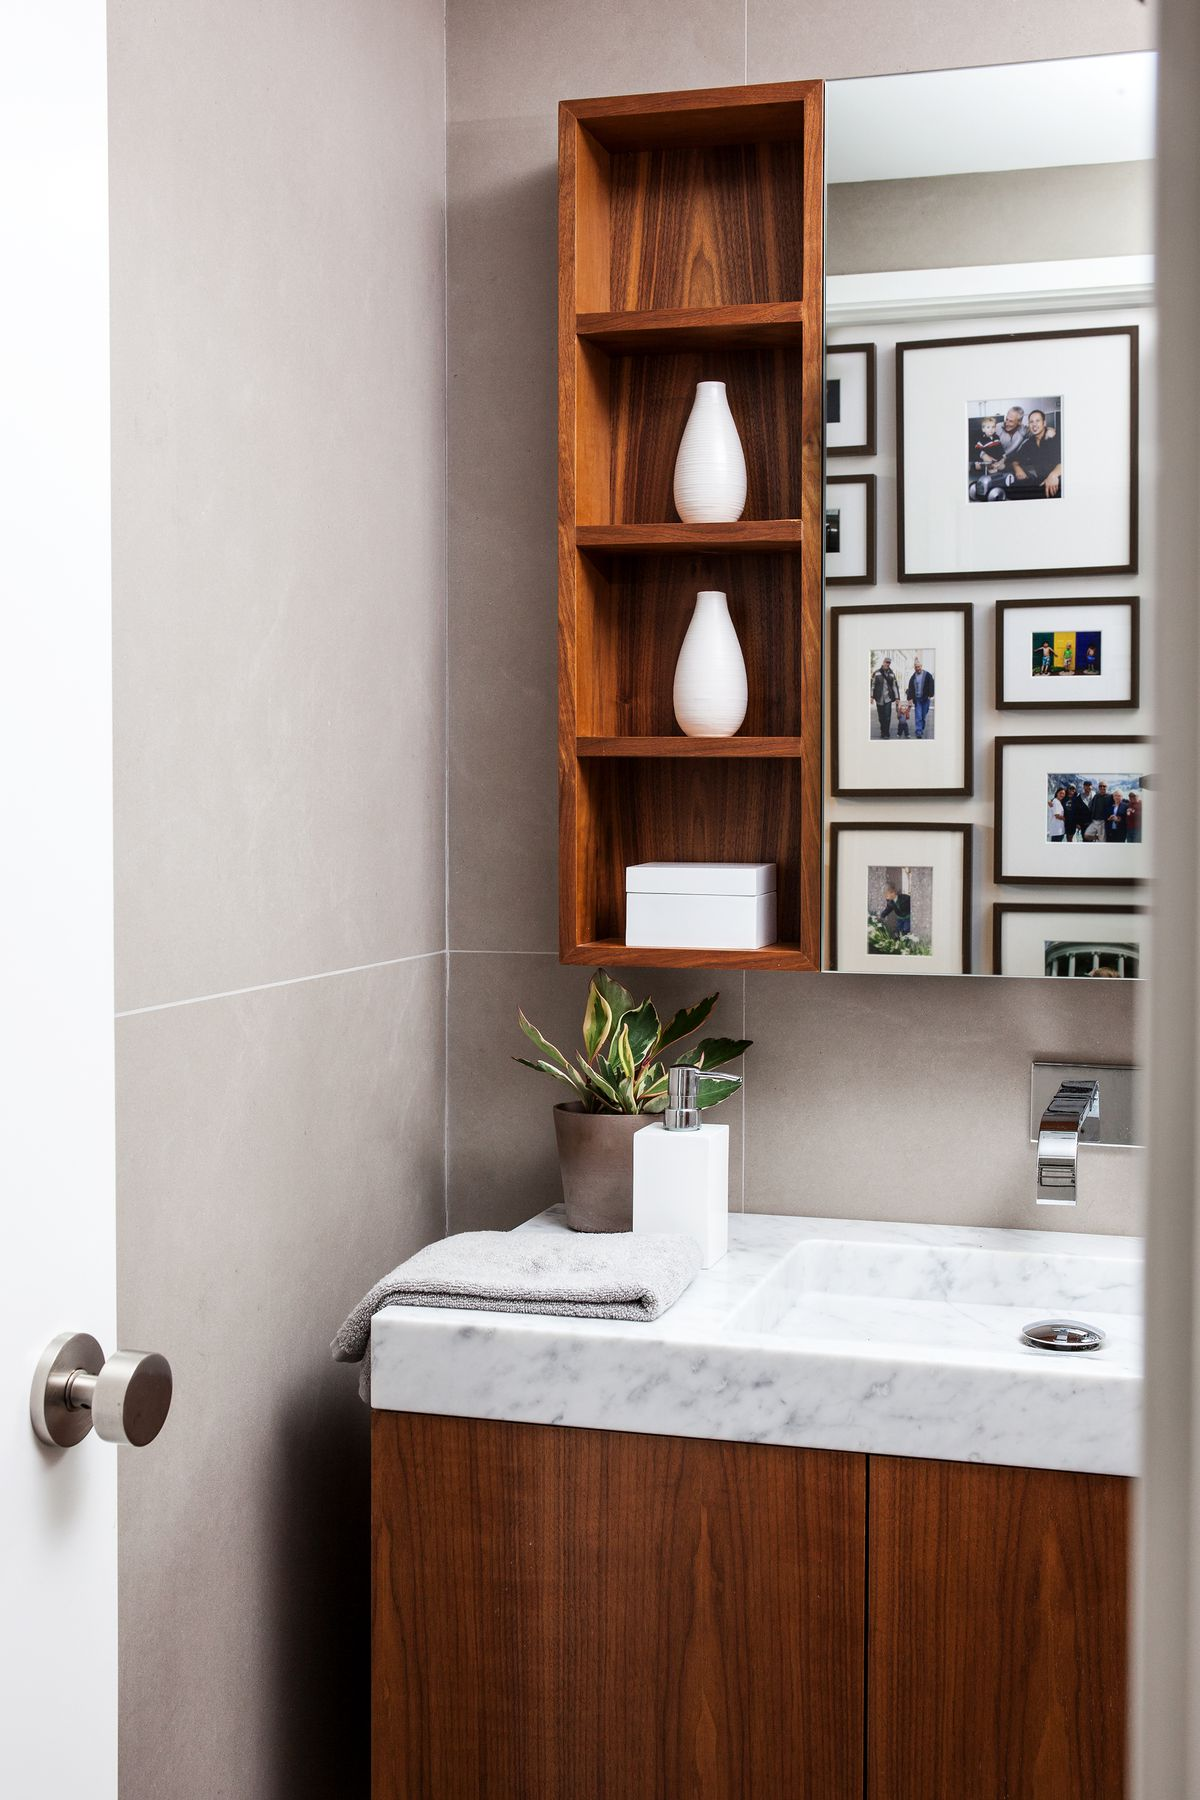 In the bathroom, there's a walnut vanity with marble sink. A mirror and walnut shelves hang above it.